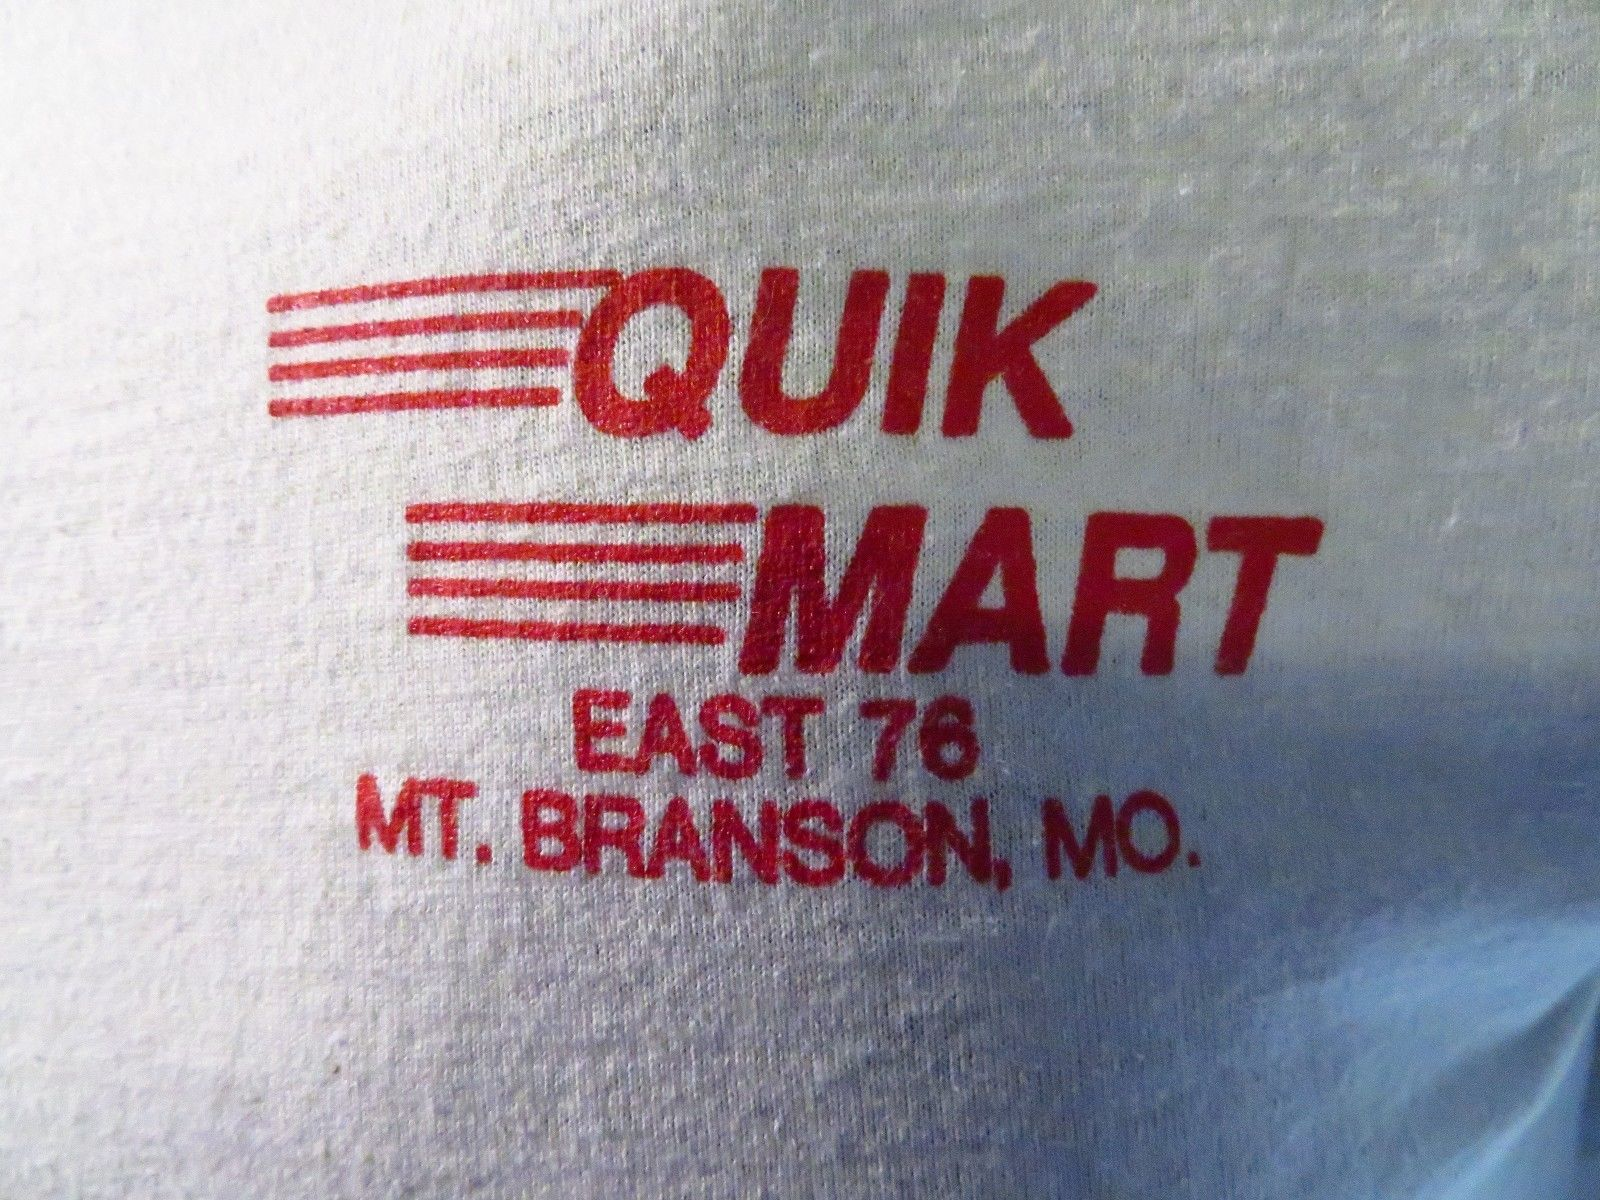 Branson Missouri Mens T-shirt Size M Crease-Resistance 100% Quality Quik Mart East 76 Mt Back To Search Resultsmen's Clothing